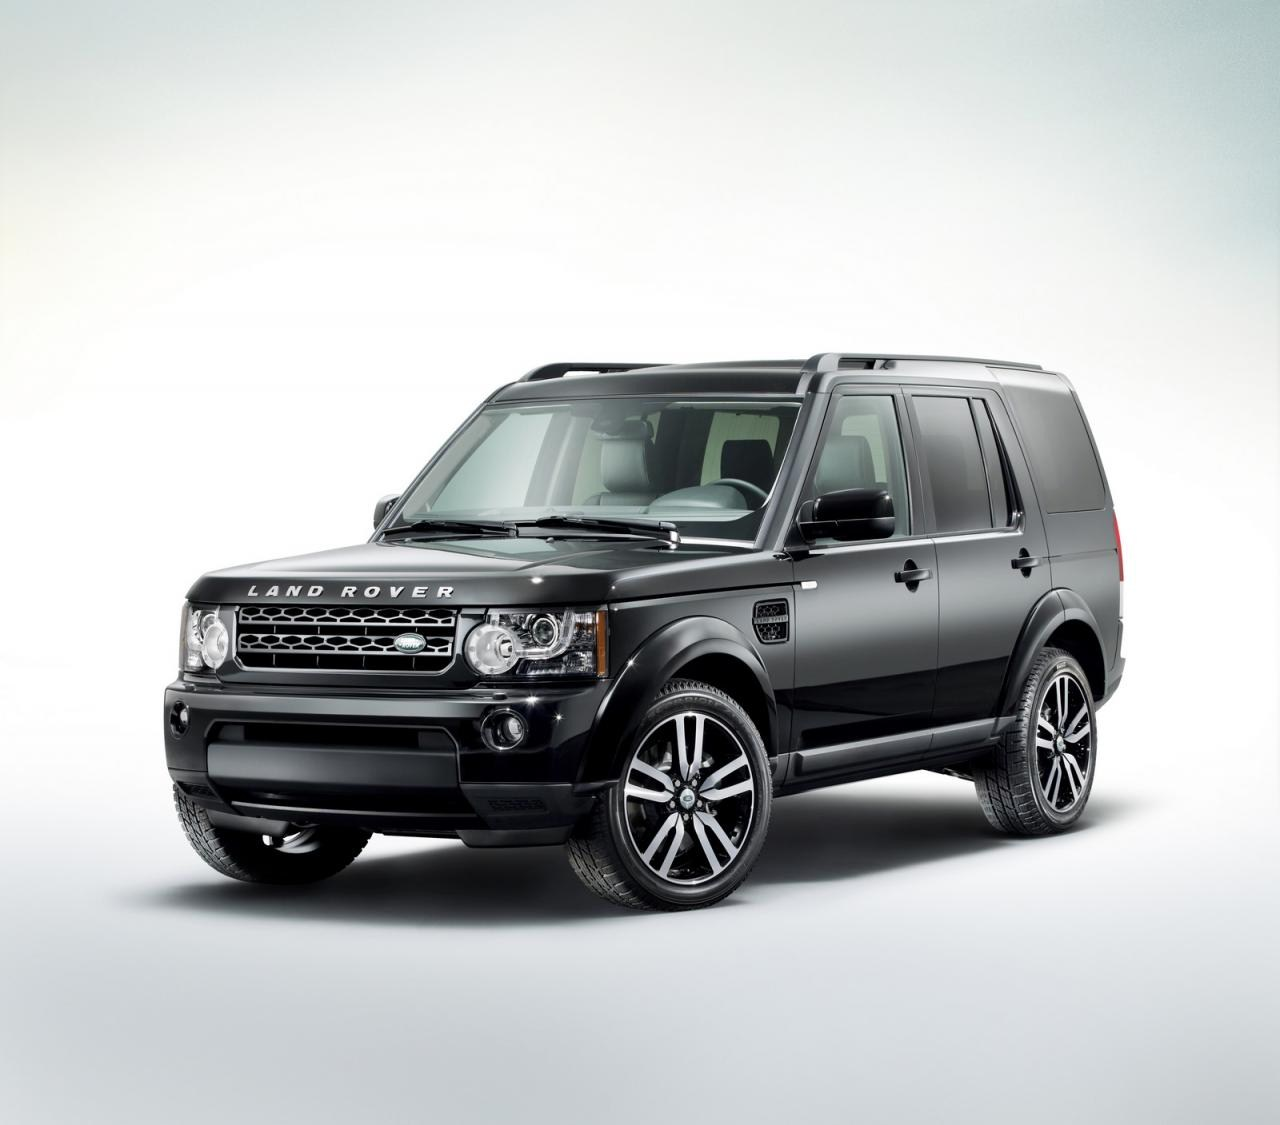 Land Rover Discovery 4 Cars Prices, Wallpaper, Specs Review